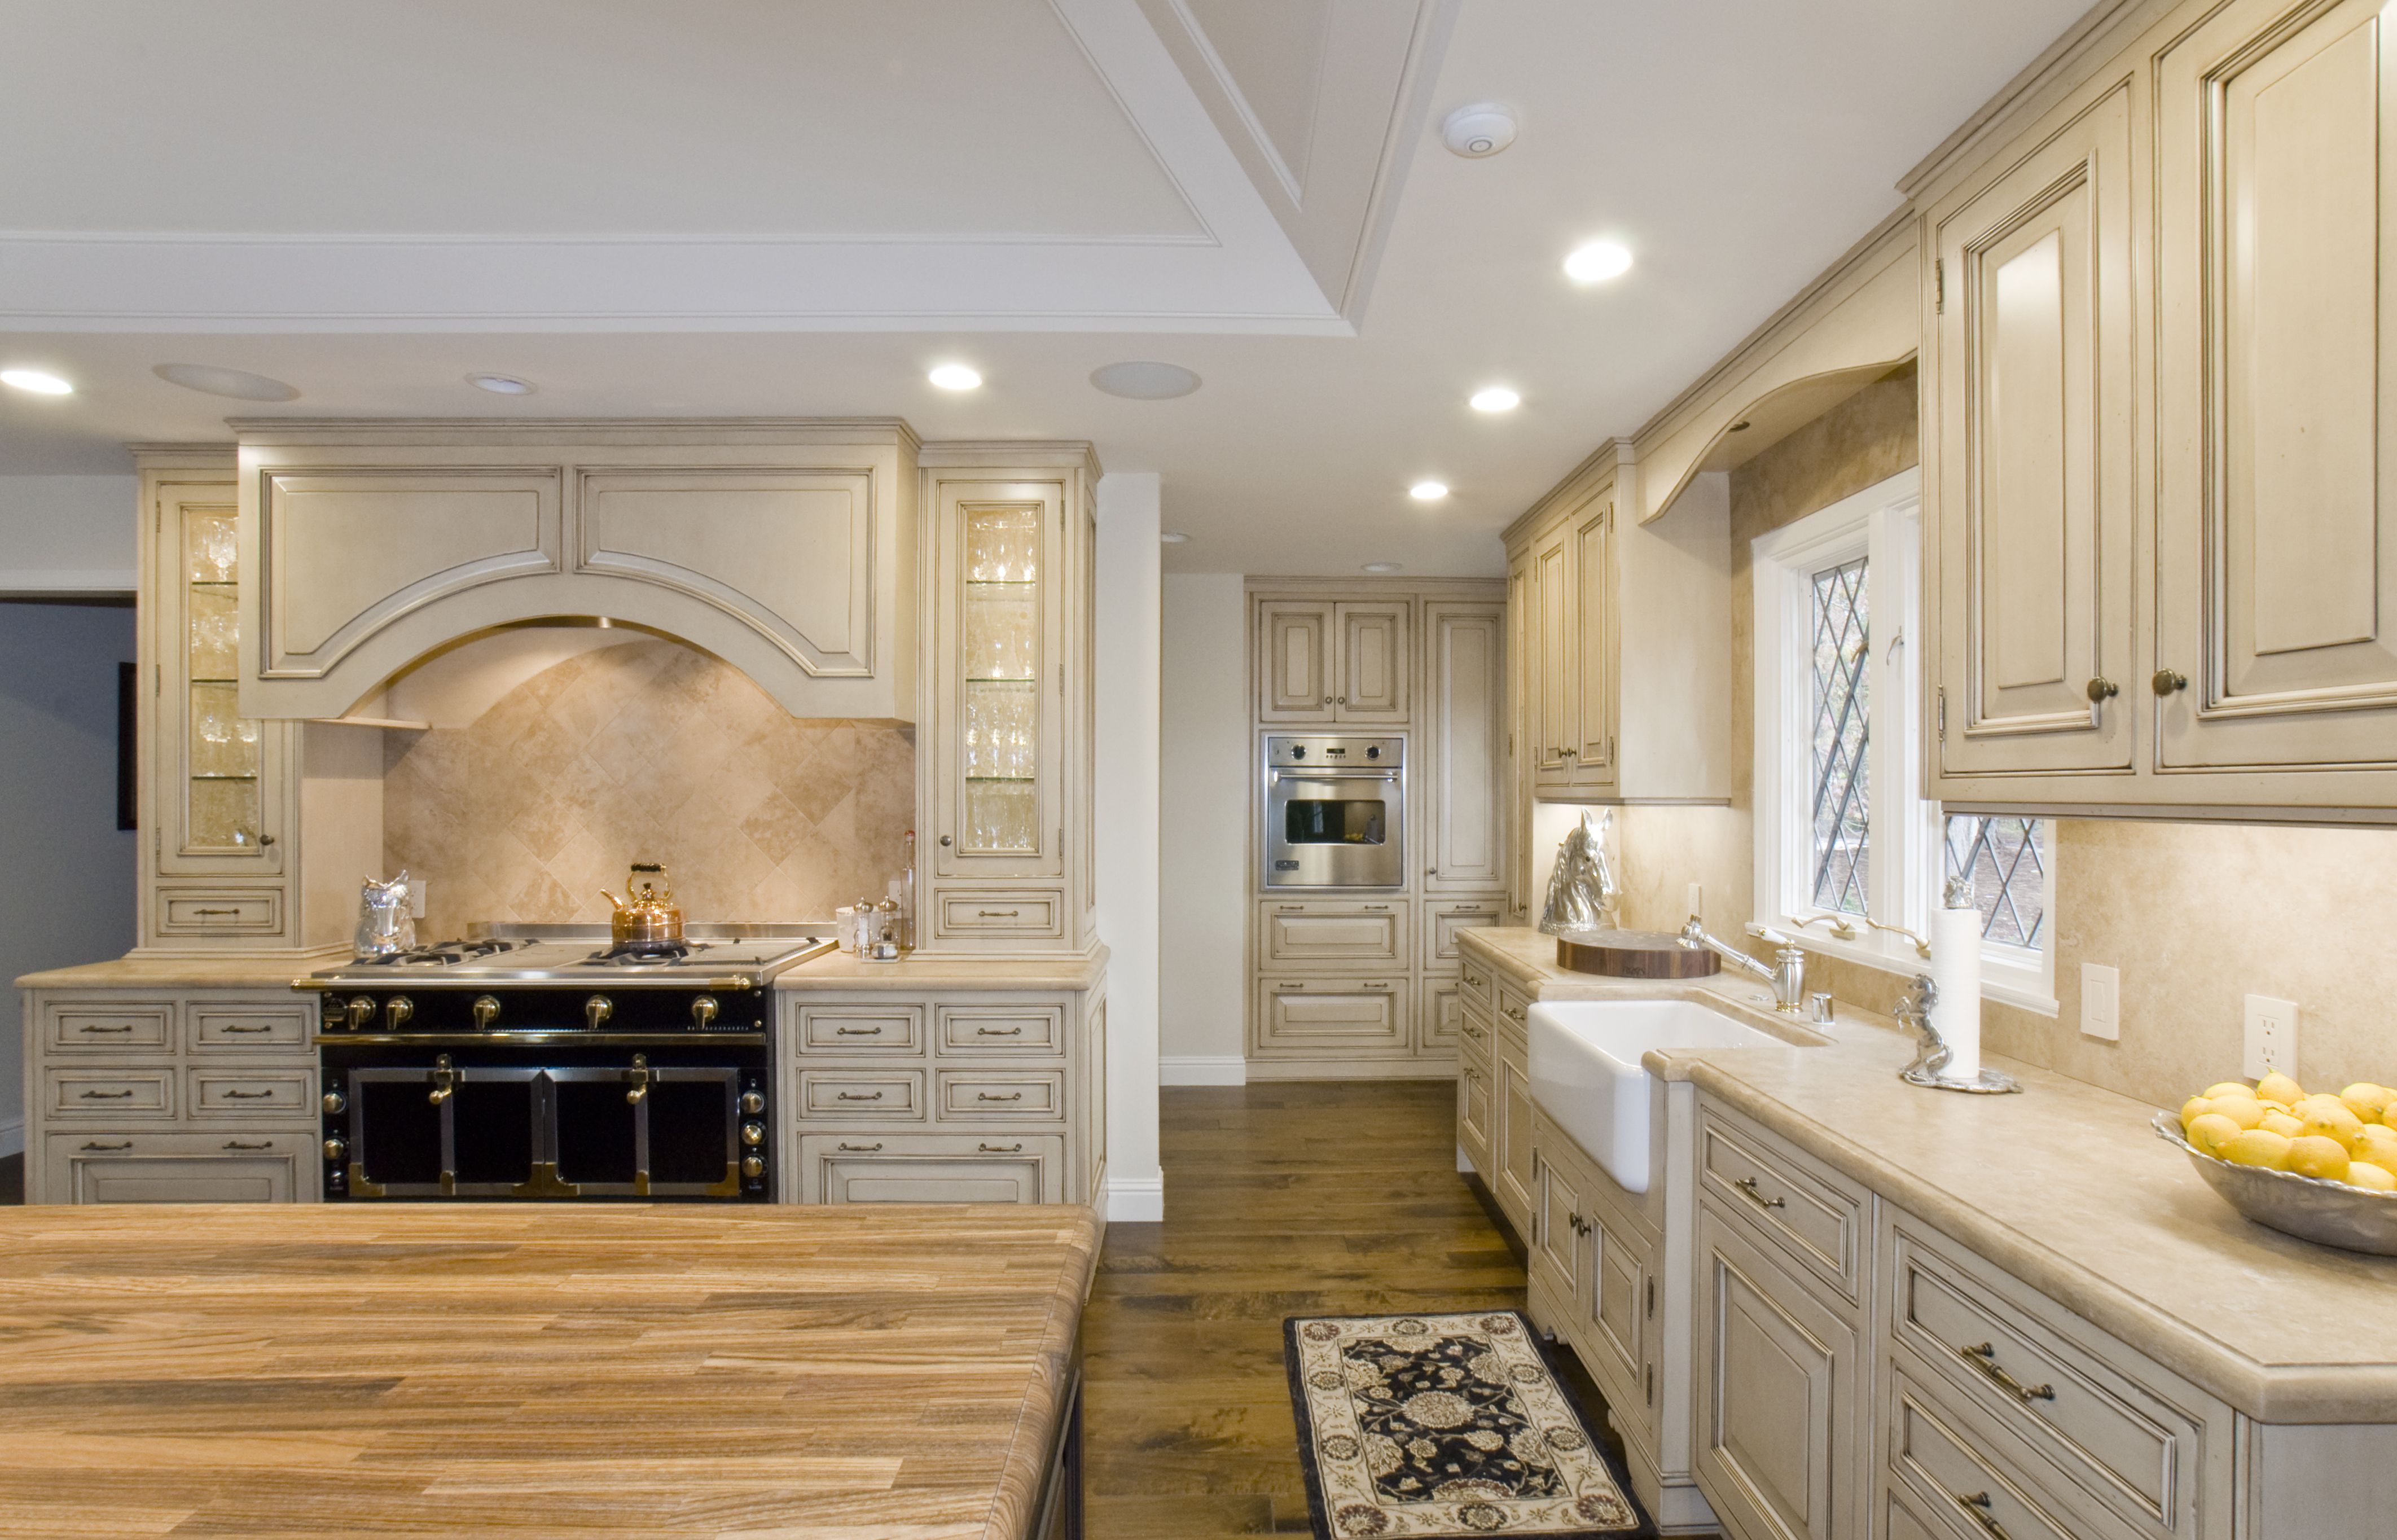 e of our pleted projects Beautiful kitchen cabinetry by Neff